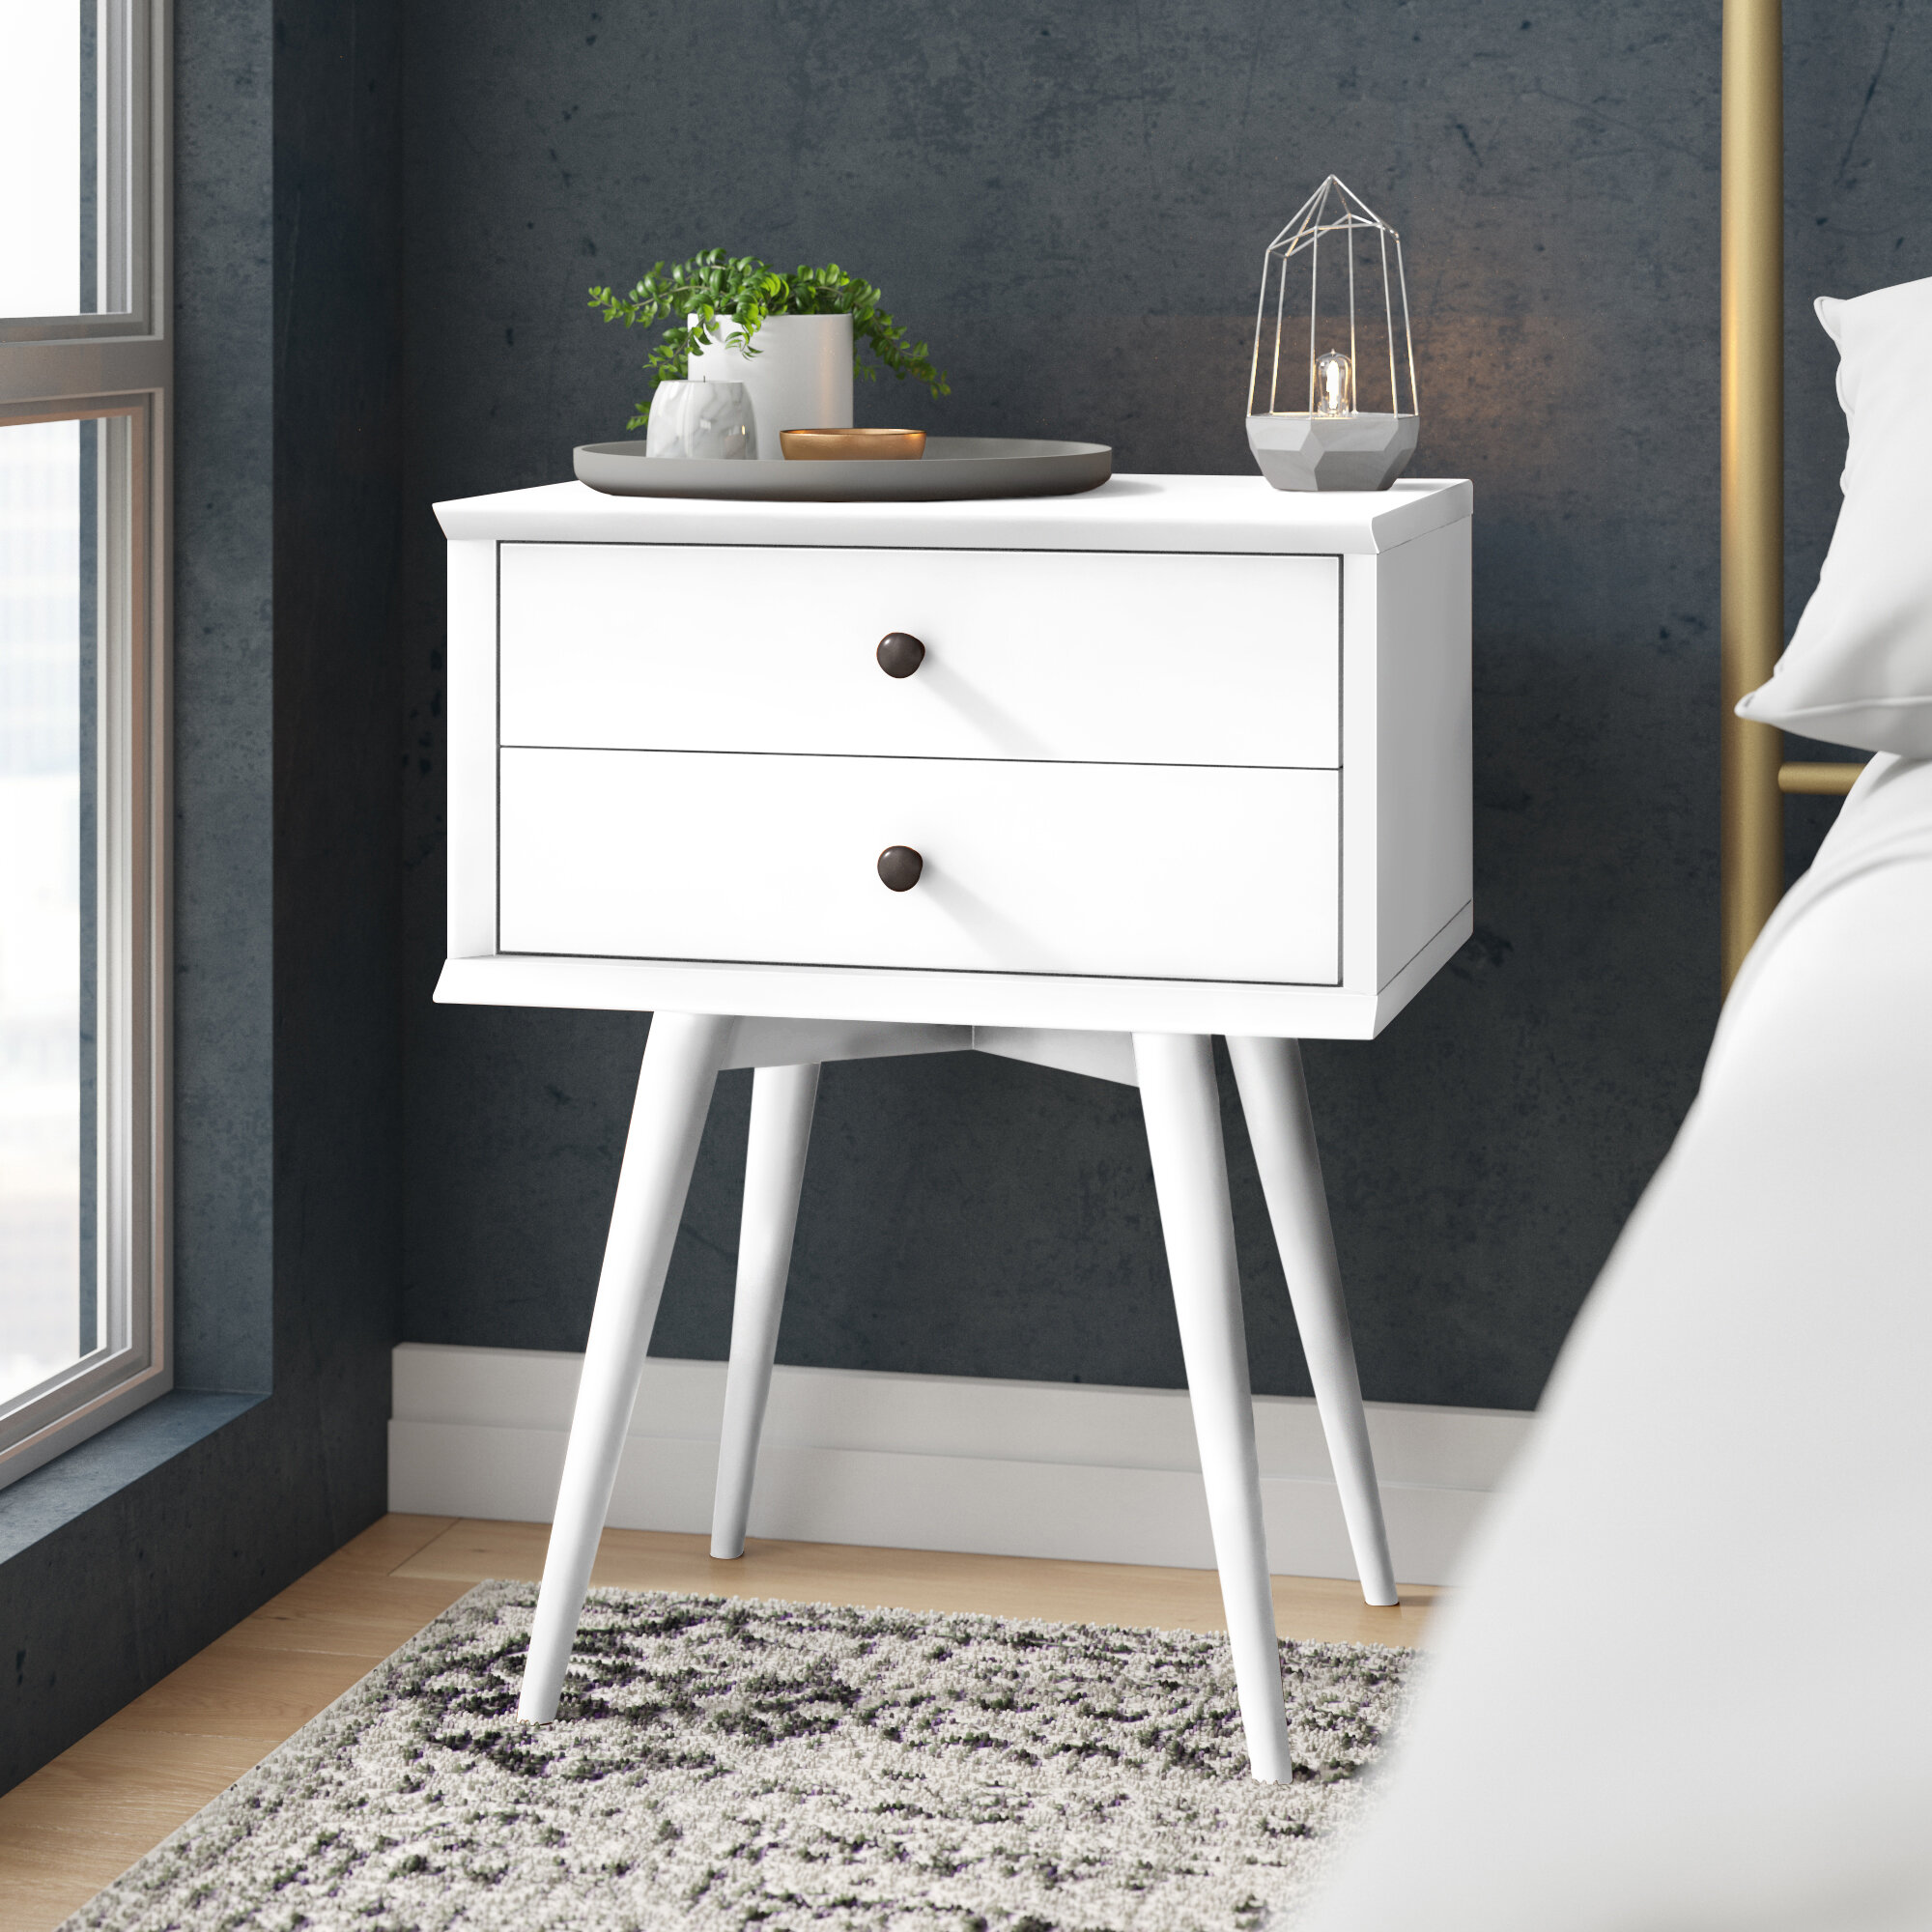 CapsA Mid-Century Side Table Side End Table Nighstand 2-Drawer Nightstand for Bedroom Sturdy and Durable Minimalist Dedside Cabinet Storage Solid Wood Legs Wood Look Decent Furniture